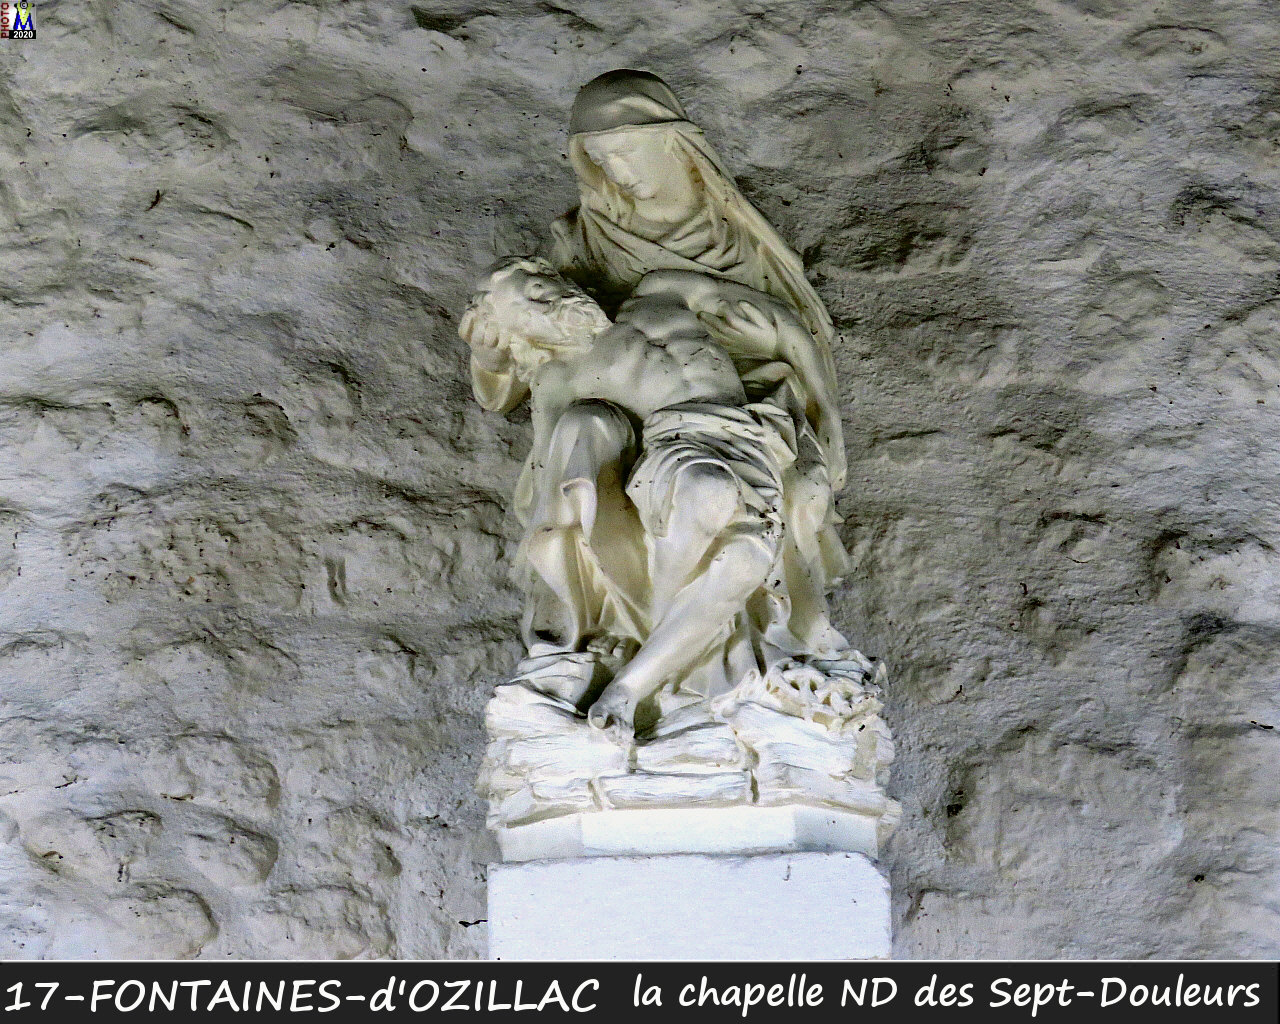 17FONTAINE-OZILLAC_chapelle_1110.jpg